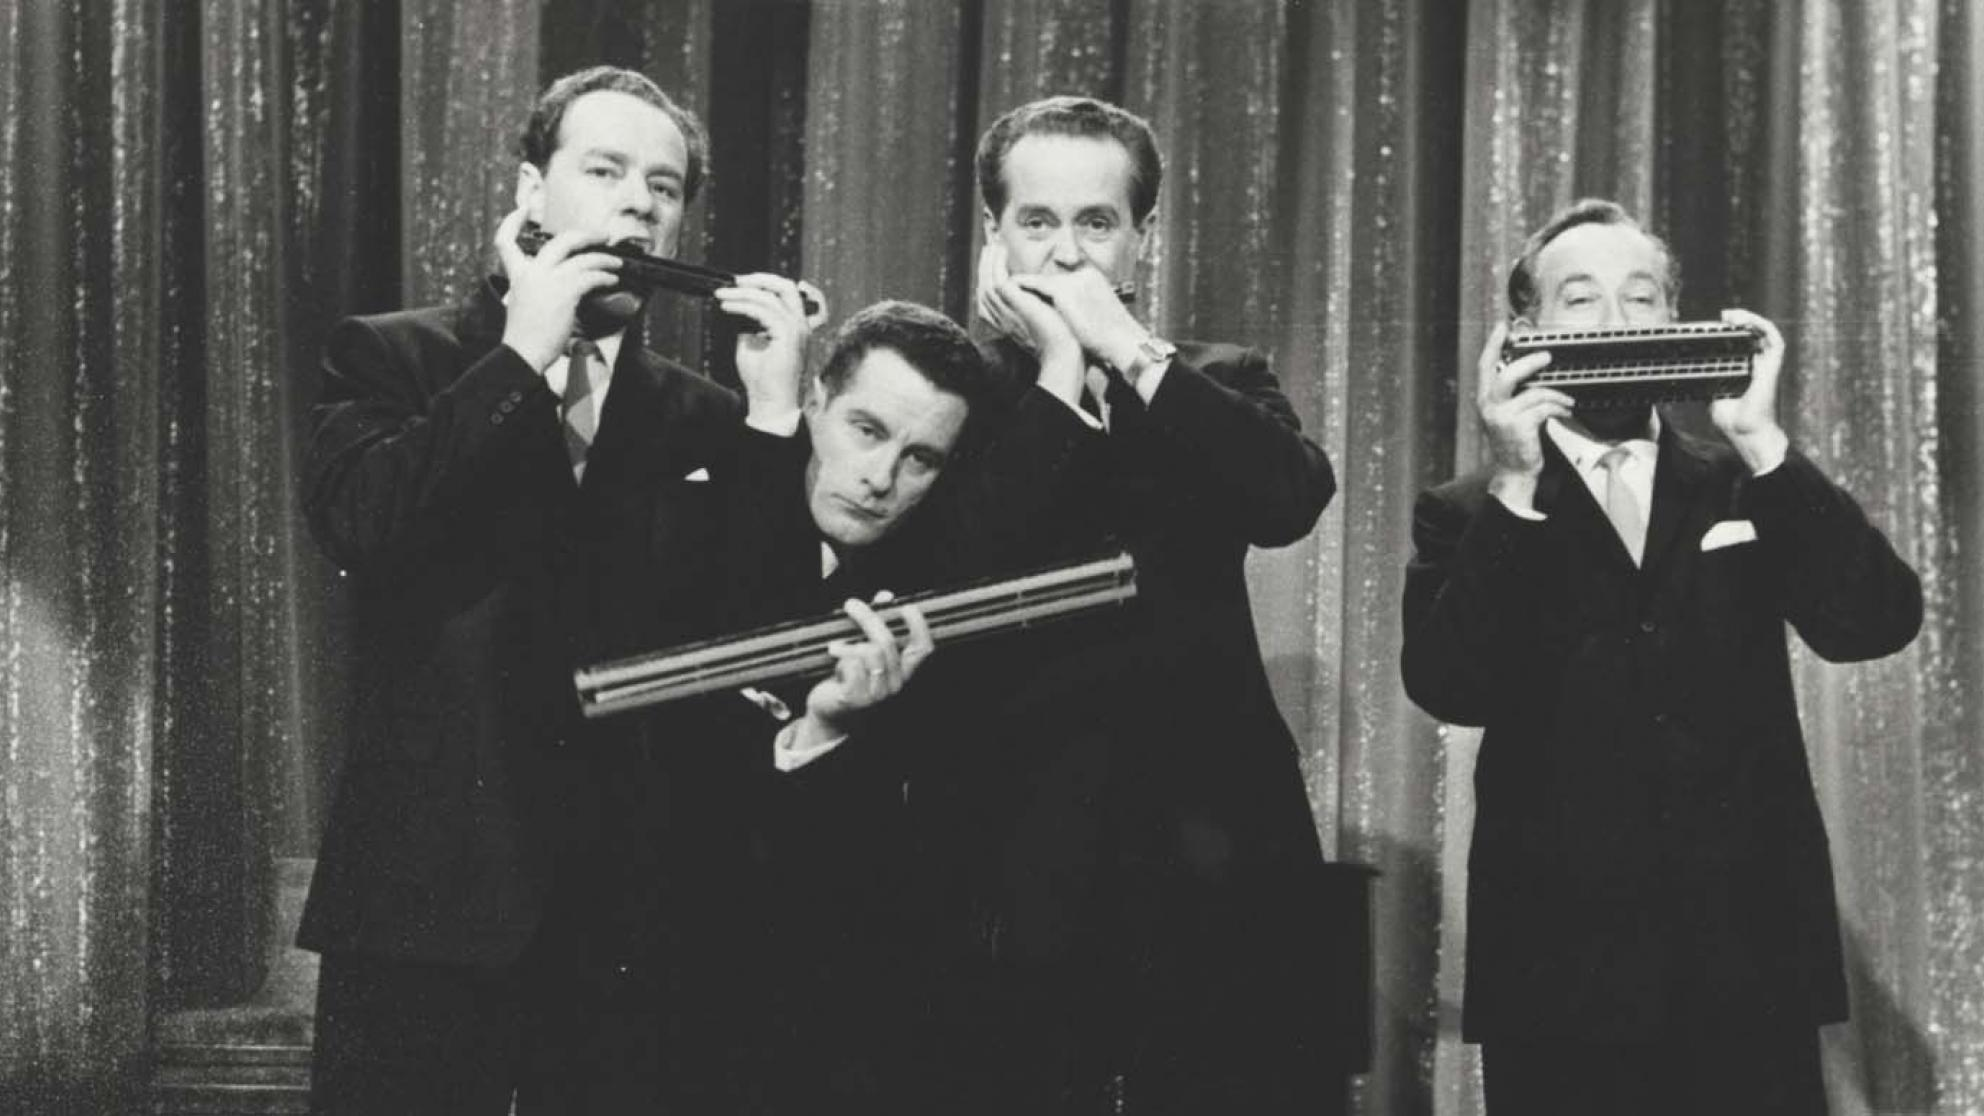 The members of the Horrie Dargie Quintet pose in front of a curtain, each member holding a harmonica